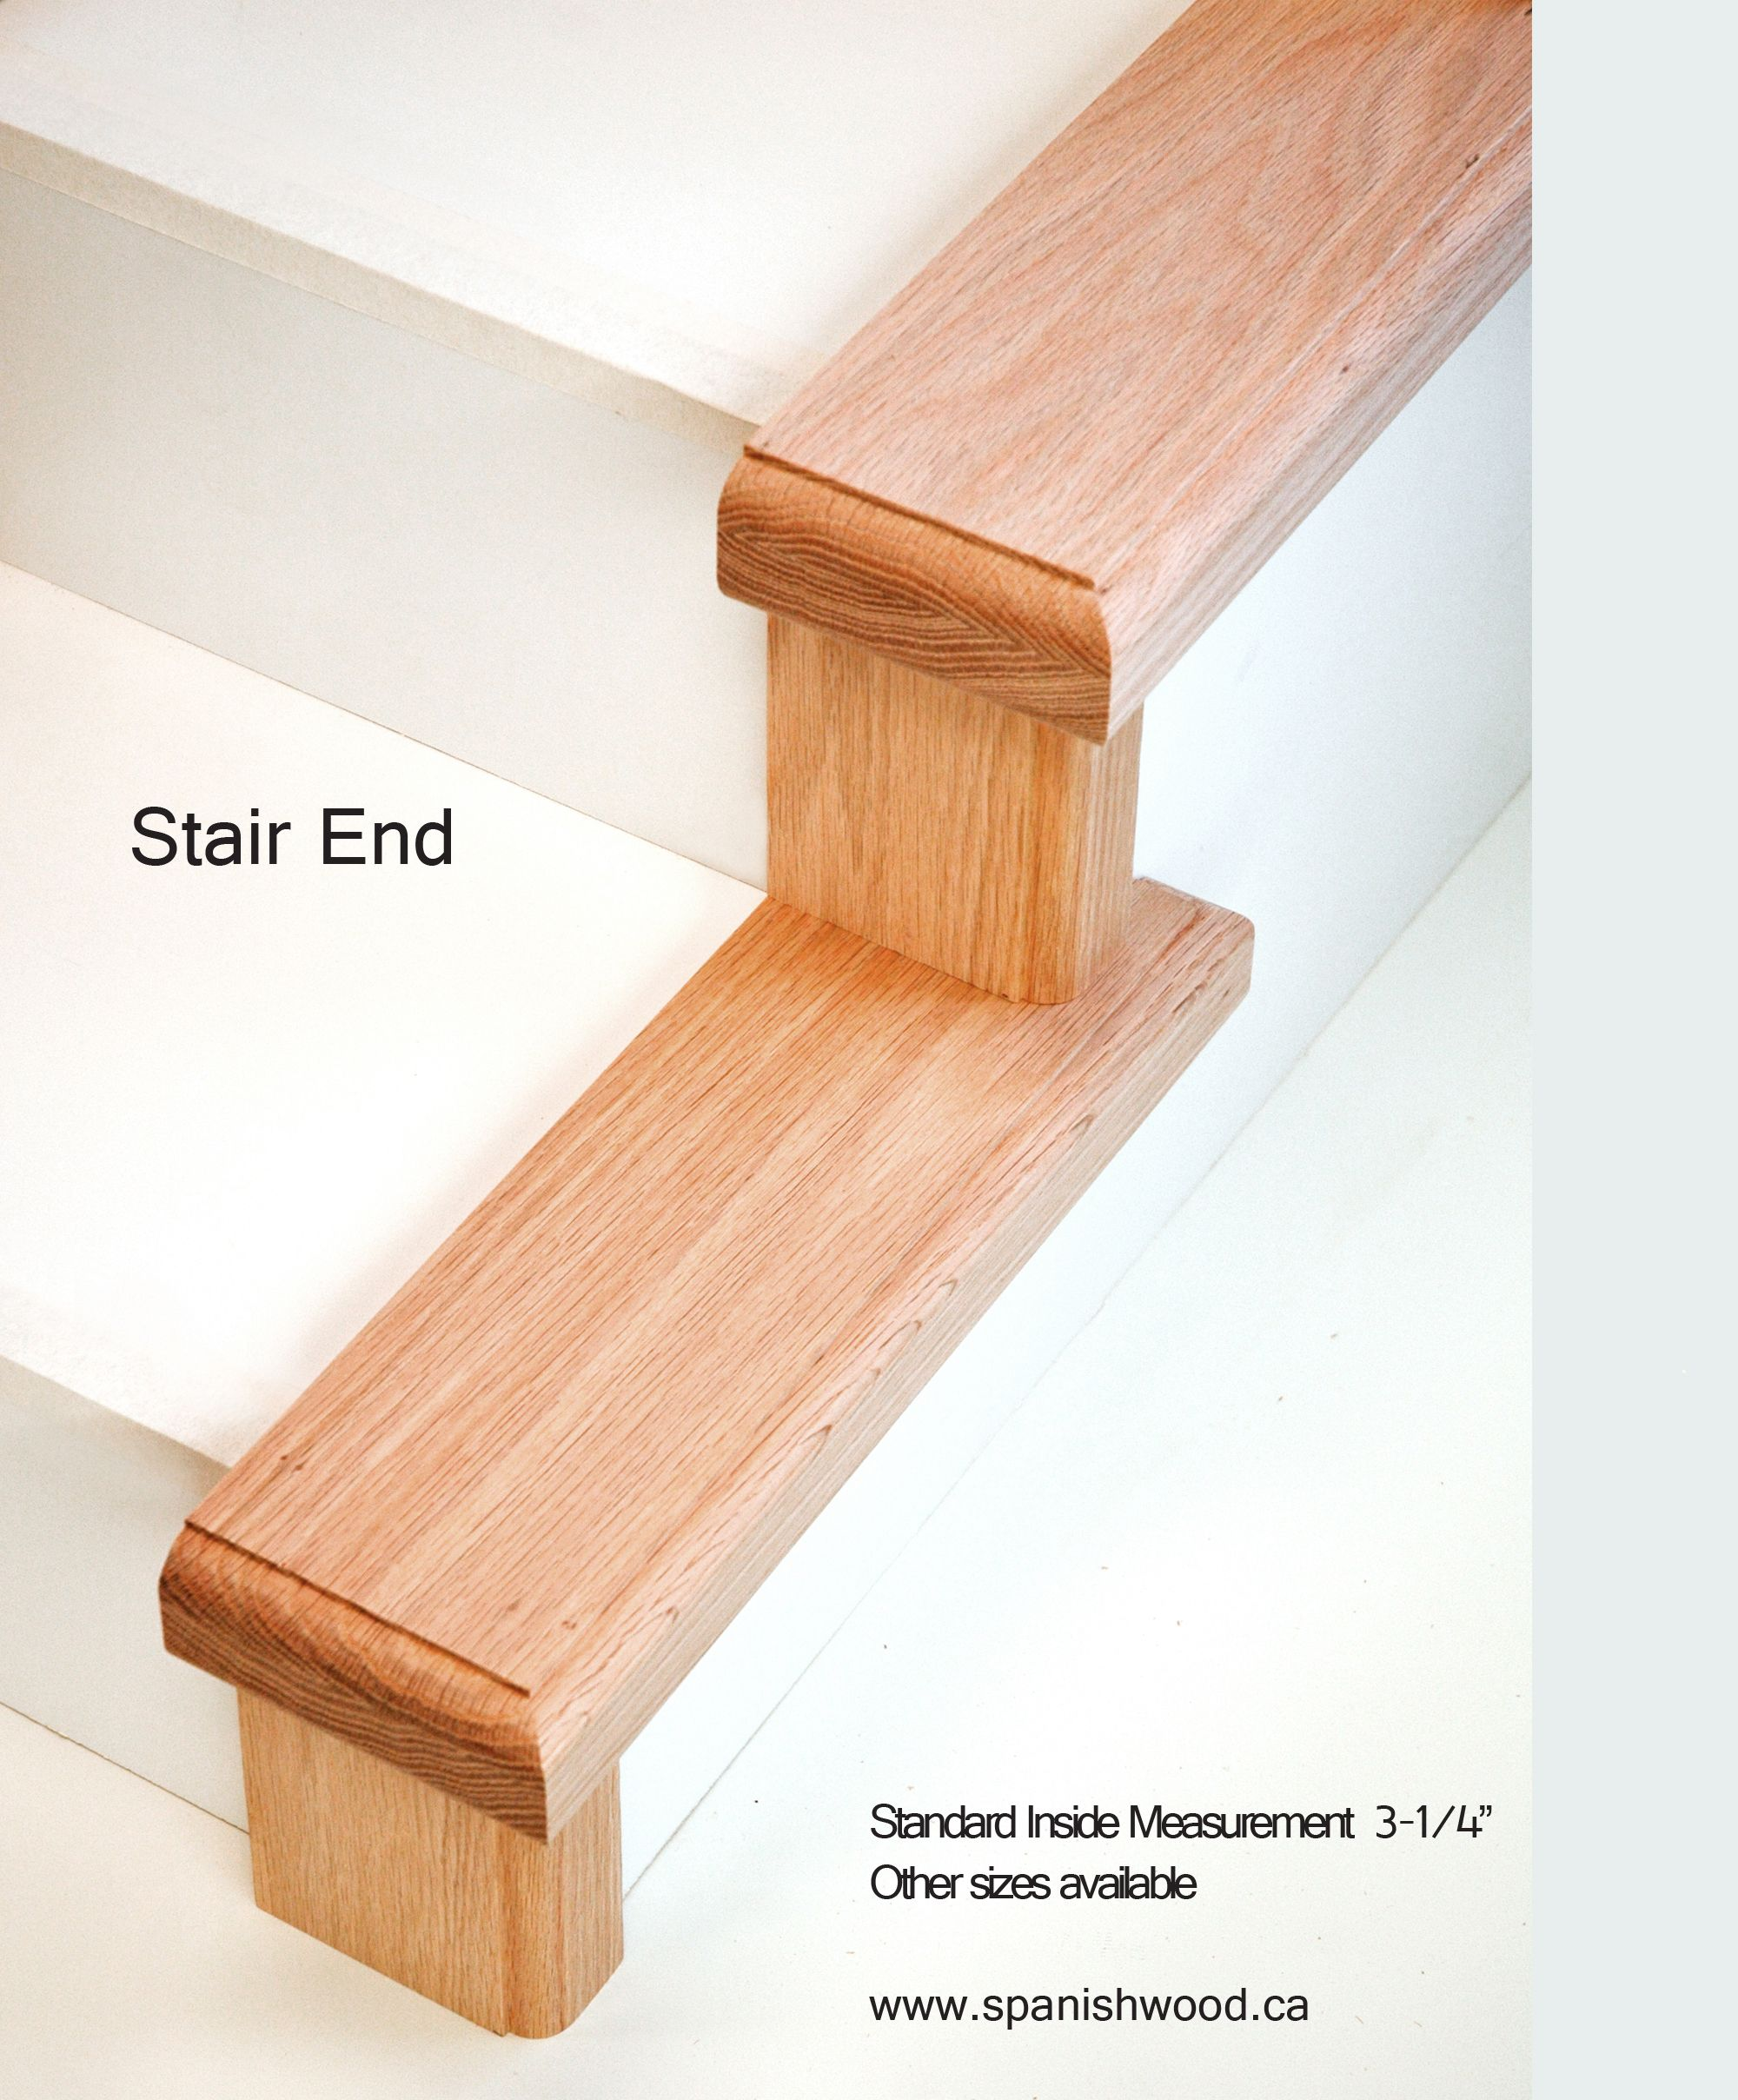 Stair Ends Can Be Used In Place Of Full Length Treads As A